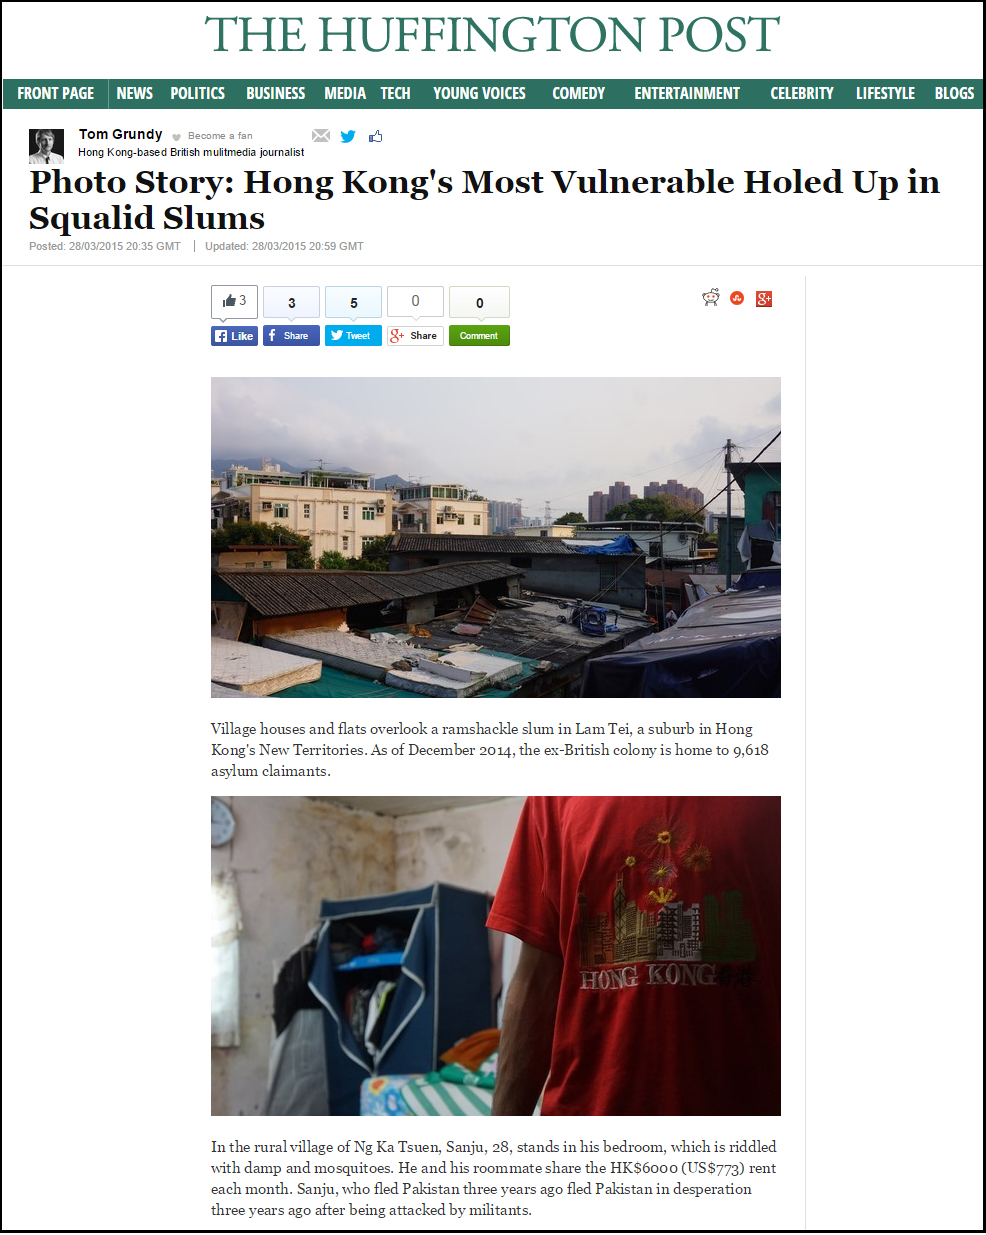 Huffington Post - HK's most vulnerable holed up in squalid slums (29Mar2015)